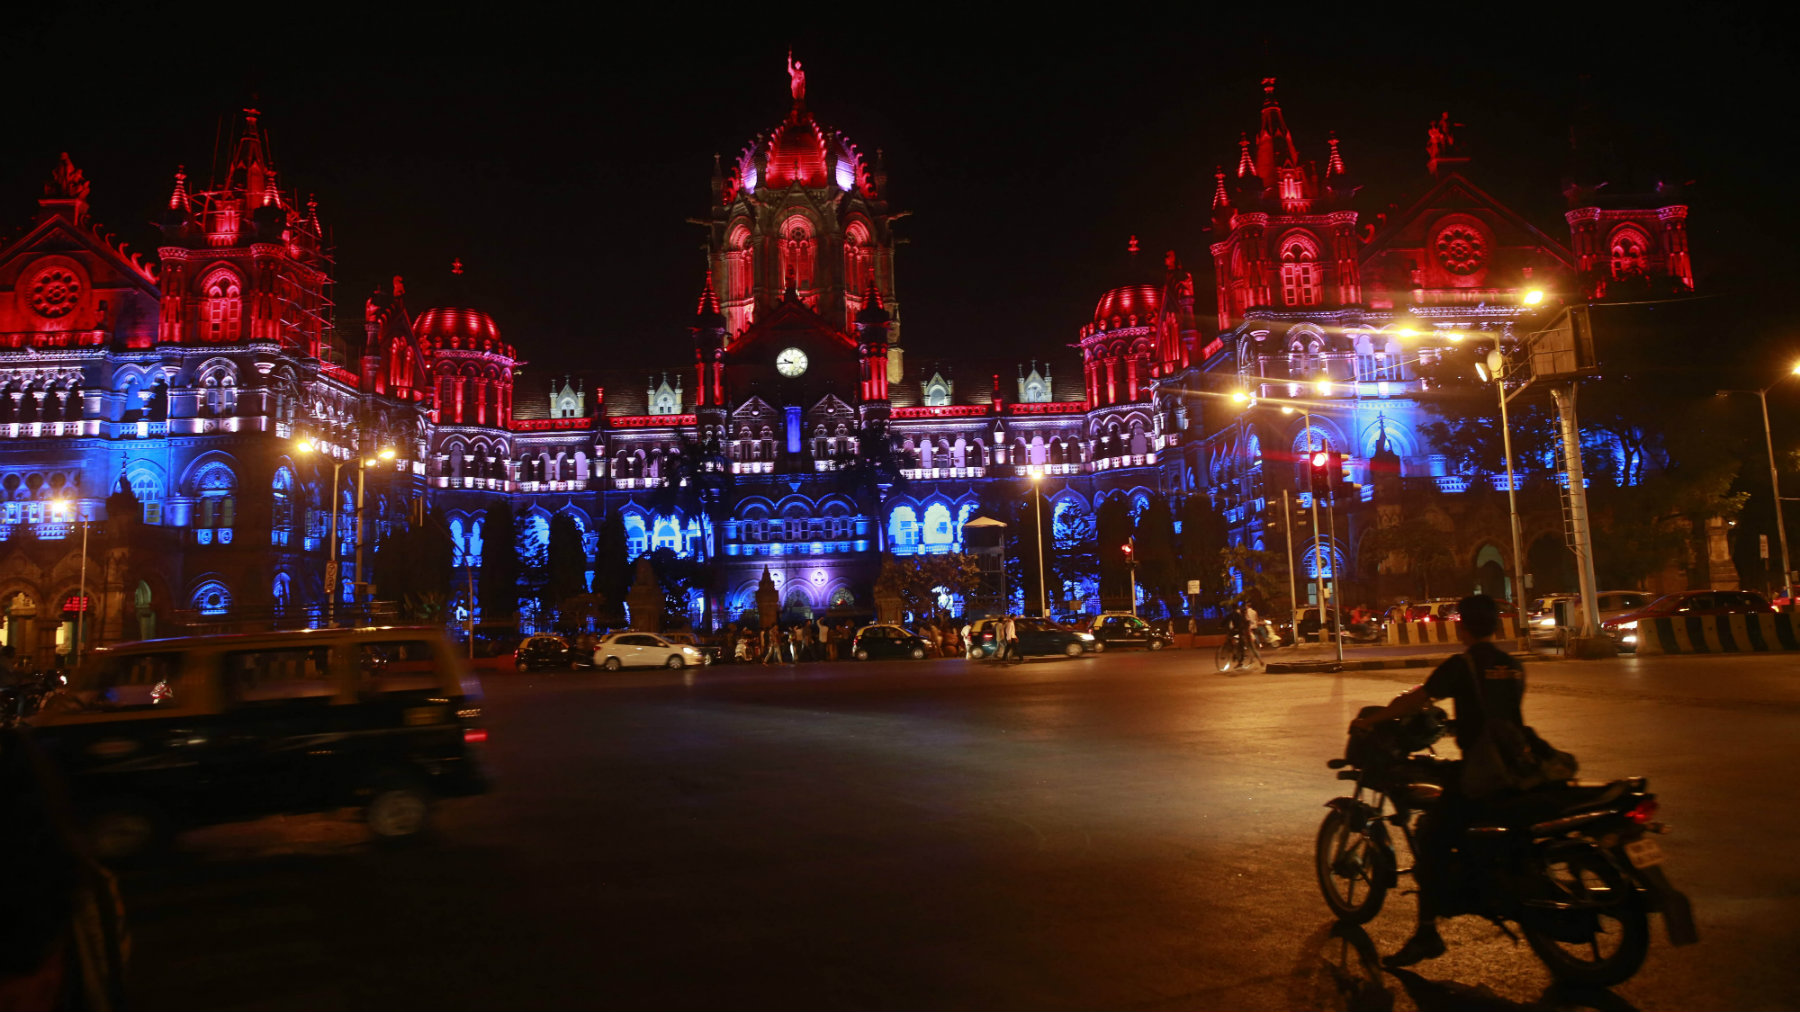 Mumbai's Chhatrapati Shivaji train station building is illuminated by the colors of the French national flag in solidarity with France following the Nov. 13 Paris terror attacks.